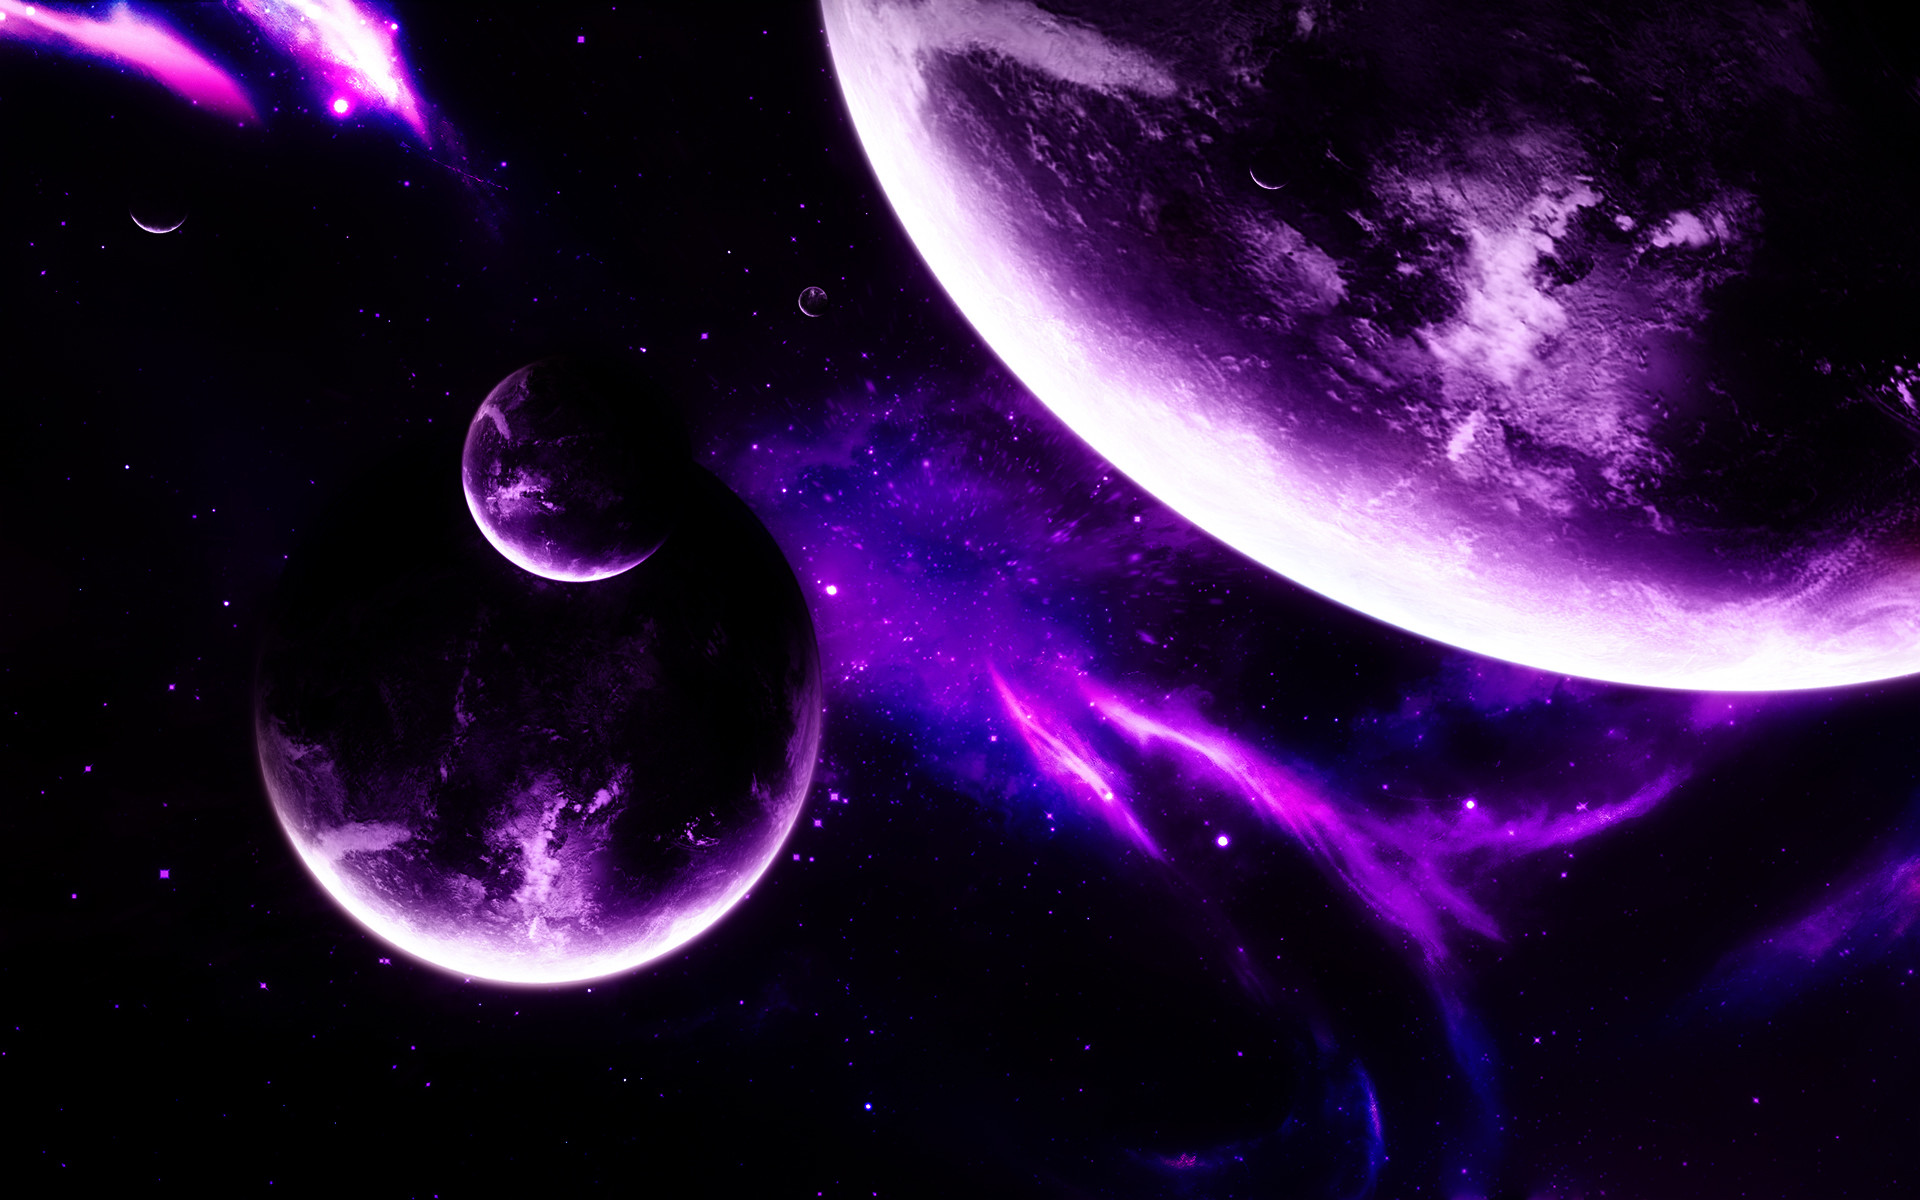 Space/Fantasy Wallpaper Set 25 | Awesome Wallpapers